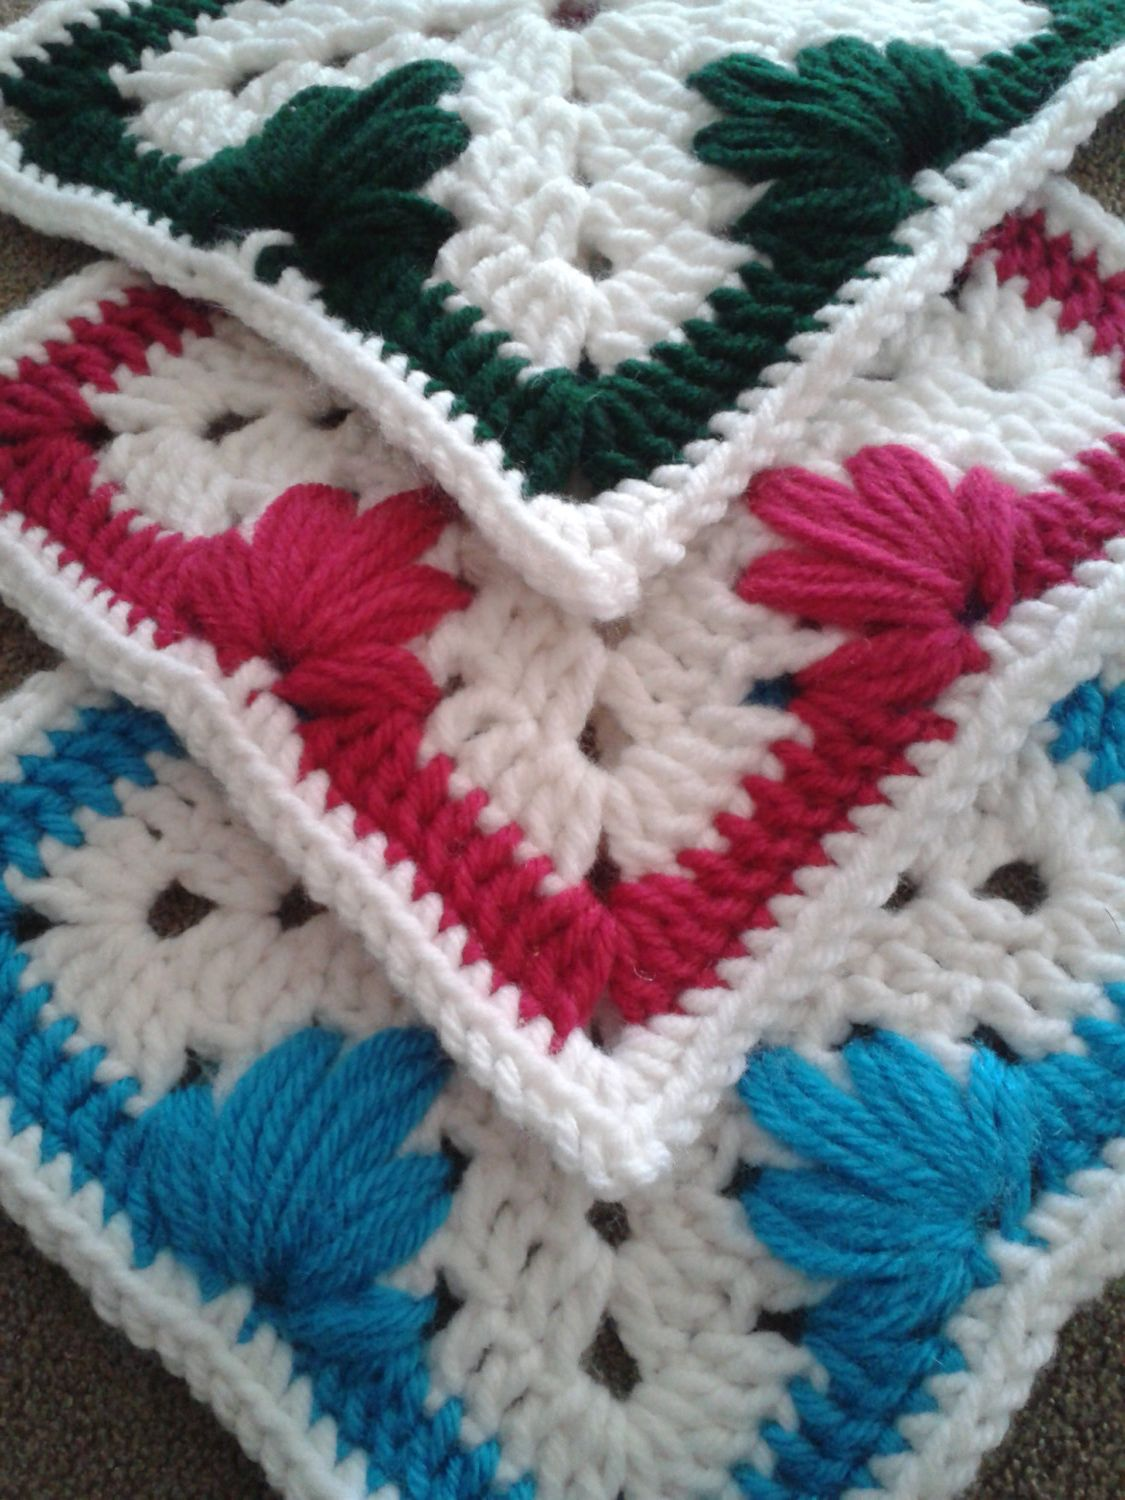 Leaf stitch granny square pattern aka spiked cluster stitch leaf stitch granny square pattern a spiked cluster stitchjyneffer by crochetbyjyneffer on etsy bankloansurffo Choice Image